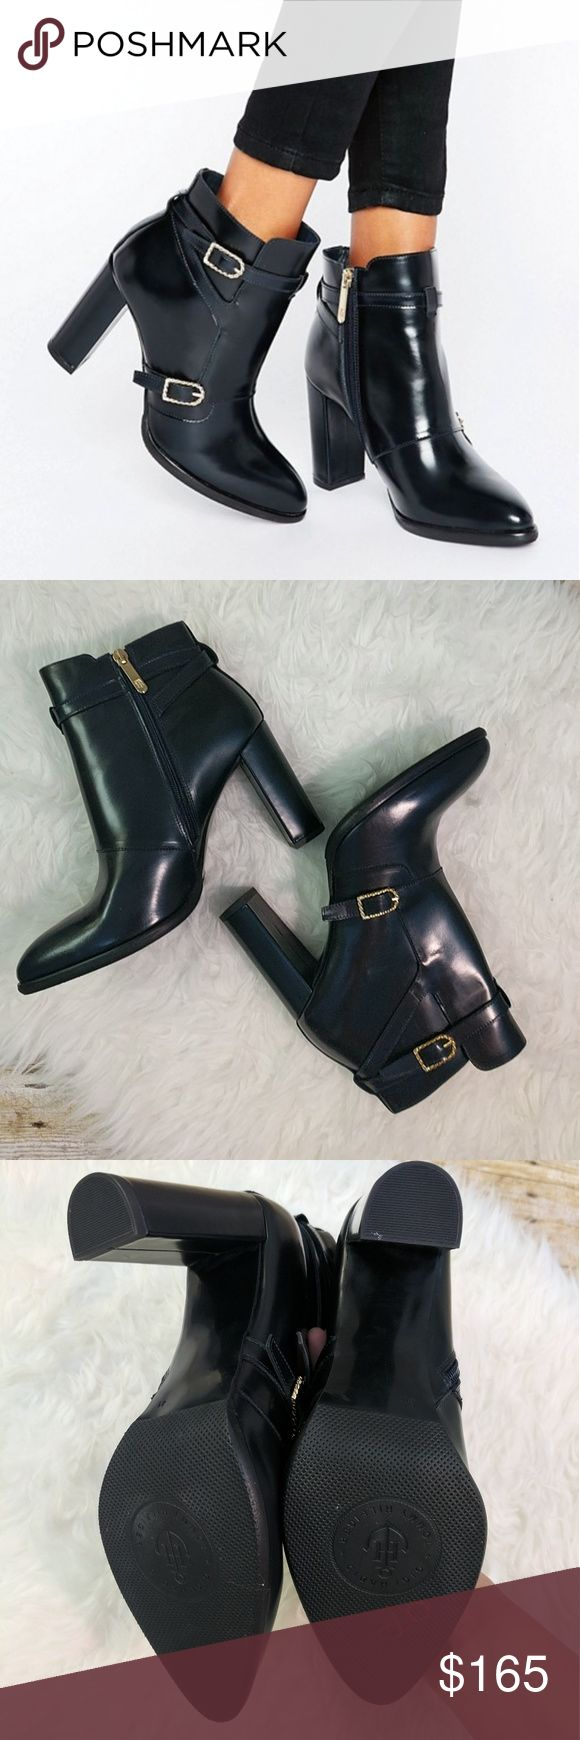 Gigi Hadid Tommy Hilfinger Nautical Booties SZ 11 New without tags or box. This is a size 11 but I would recommend for someone a size and nine and a half of 10. They are a little bit narrower at the toe. They are sold out pretty much everywhere. Price is firm. Tommy Hilfiger Shoes Ankle Boots & Booties